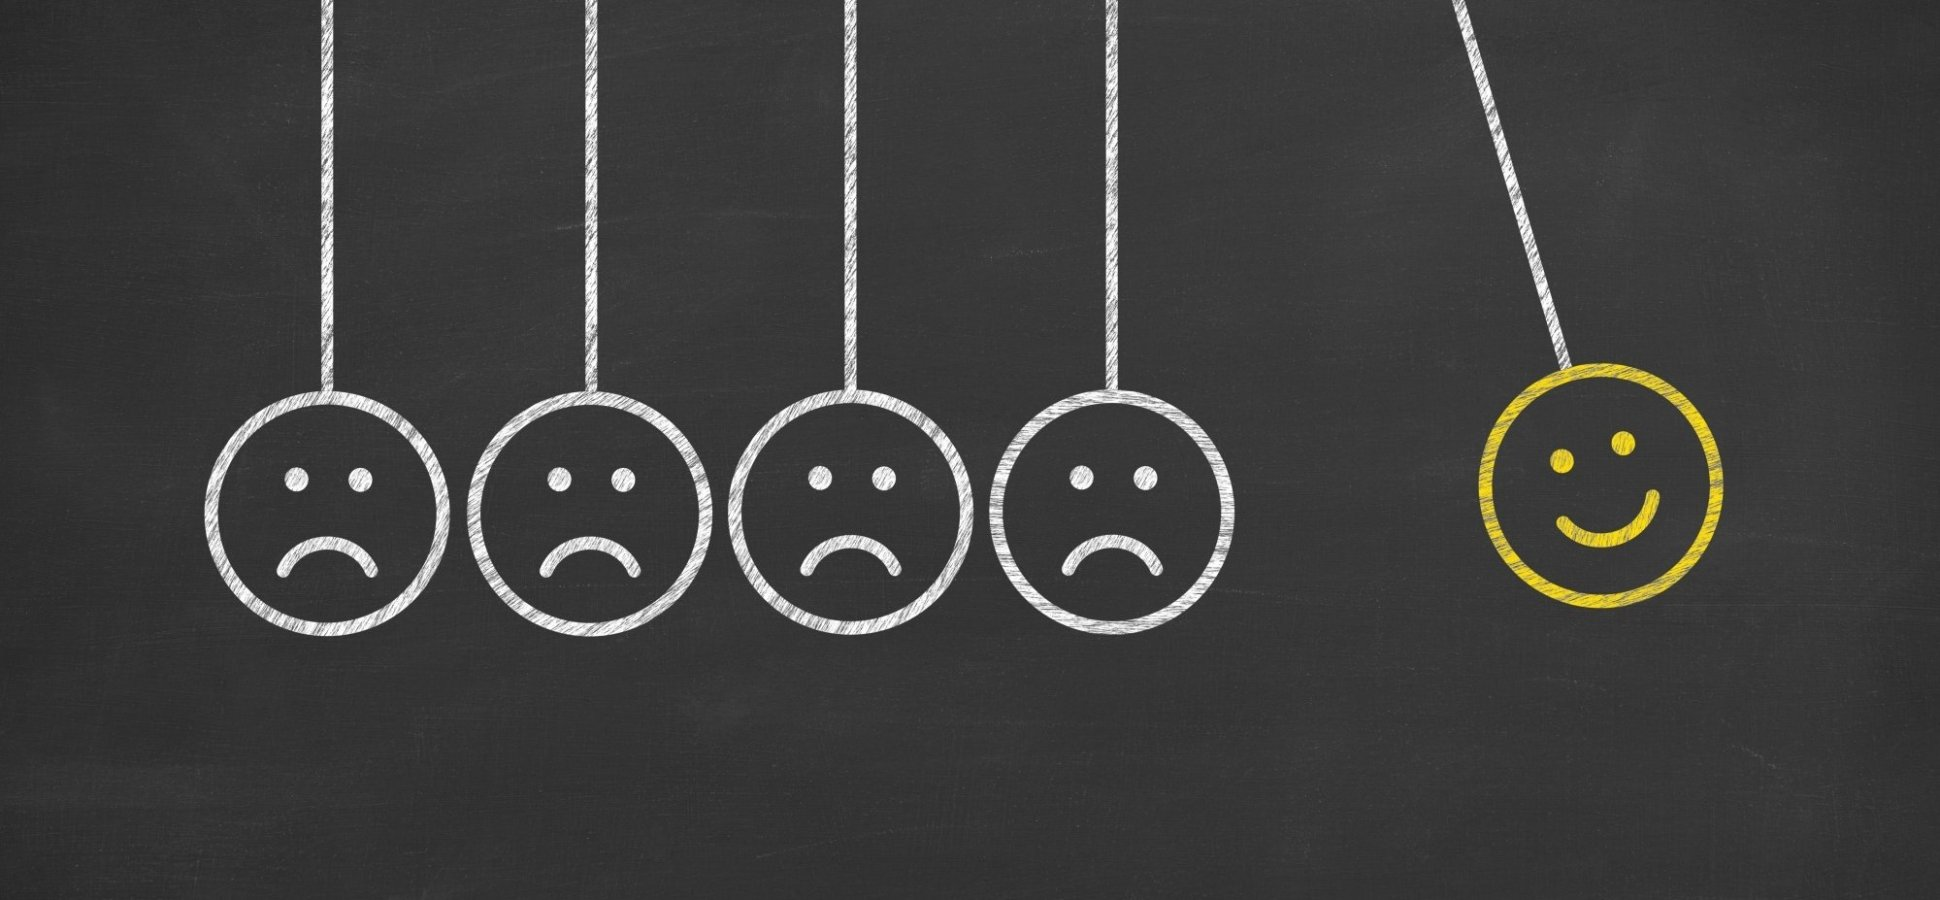 Stuck in Judgment? Ask Yourself These 5 Transforming Questions